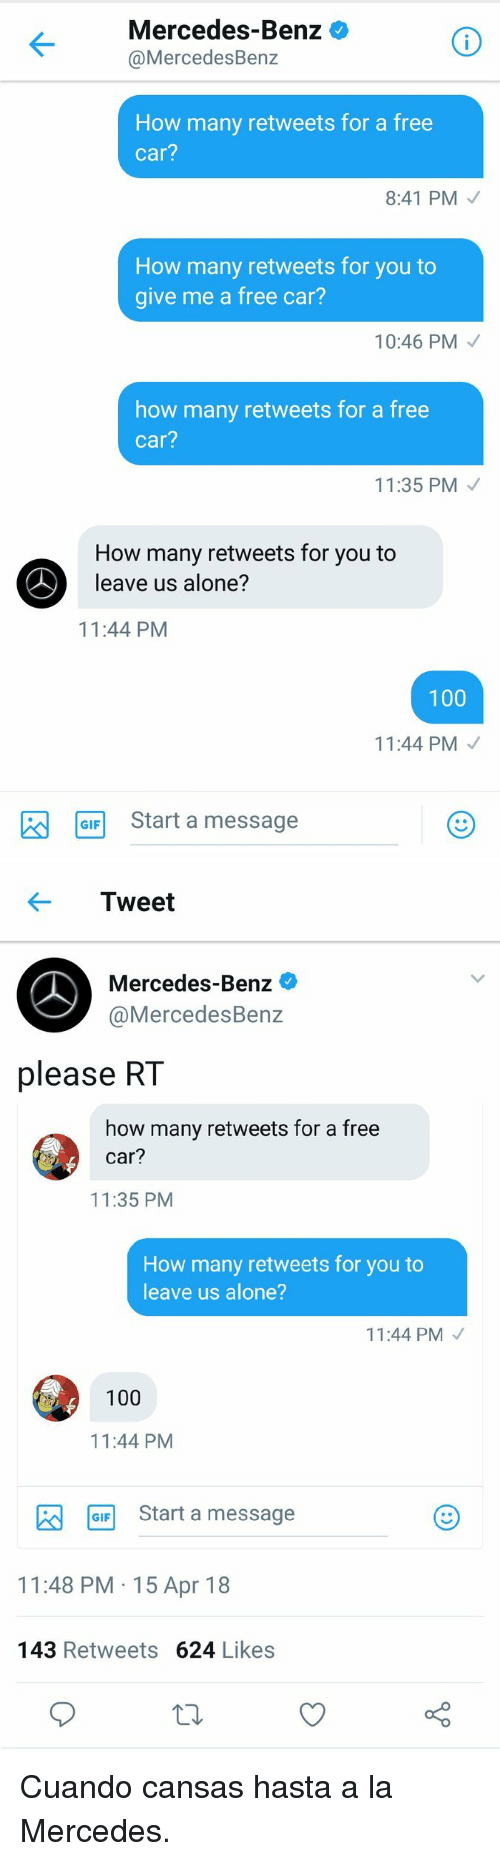 mercedes benz: Mercedes-Benz  @MercedesBenz  How many retweets for a free  car?  8:41 PM  How many retweets for you to  give me a free car?  10:46 PM  how many retweets for a free  car?  11:35 PM  How many retweets for you to  leave us alone?  11:44 PM  100  11:44 PM  aStart a message   ← Tweet  Mercedes-Benz  @MercedesBenz  please RT  how many retweets for a free  car?  11:35 PM  How many retweets for you to  leave us alone?  11:44 PM  100  11:44 PM  GF Start a message  11:48 PM 15 Apr 18  143 Retweets 624 Likes <p>Cuando cansas hasta a la Mercedes.</p>